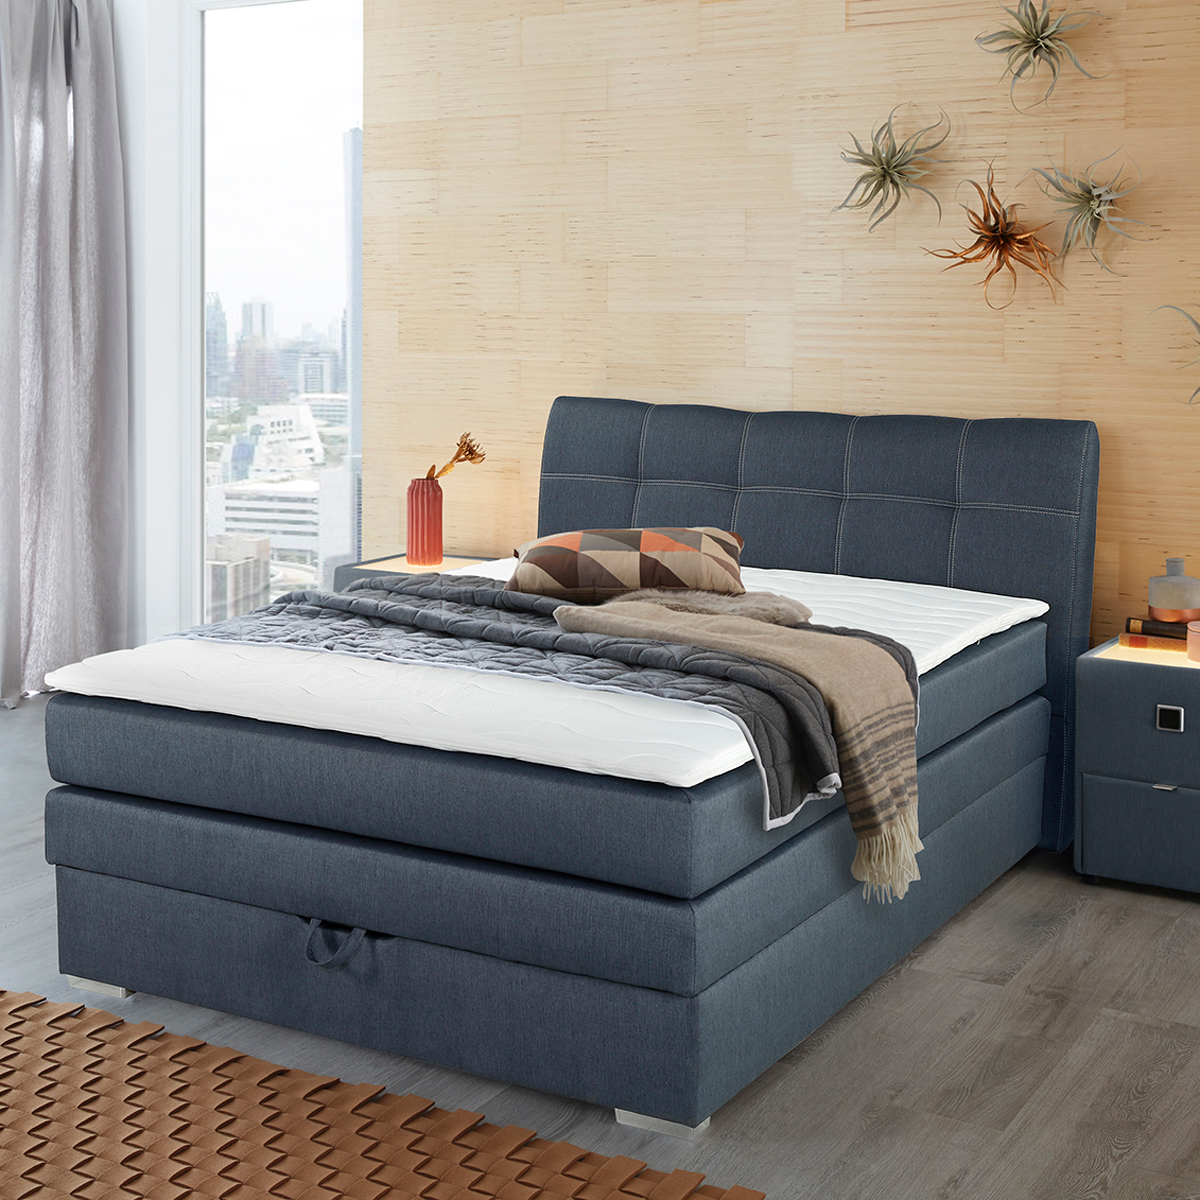 boxspringbett amelie 140 in graublau mit bettkasten topper bett bonell federkern. Black Bedroom Furniture Sets. Home Design Ideas